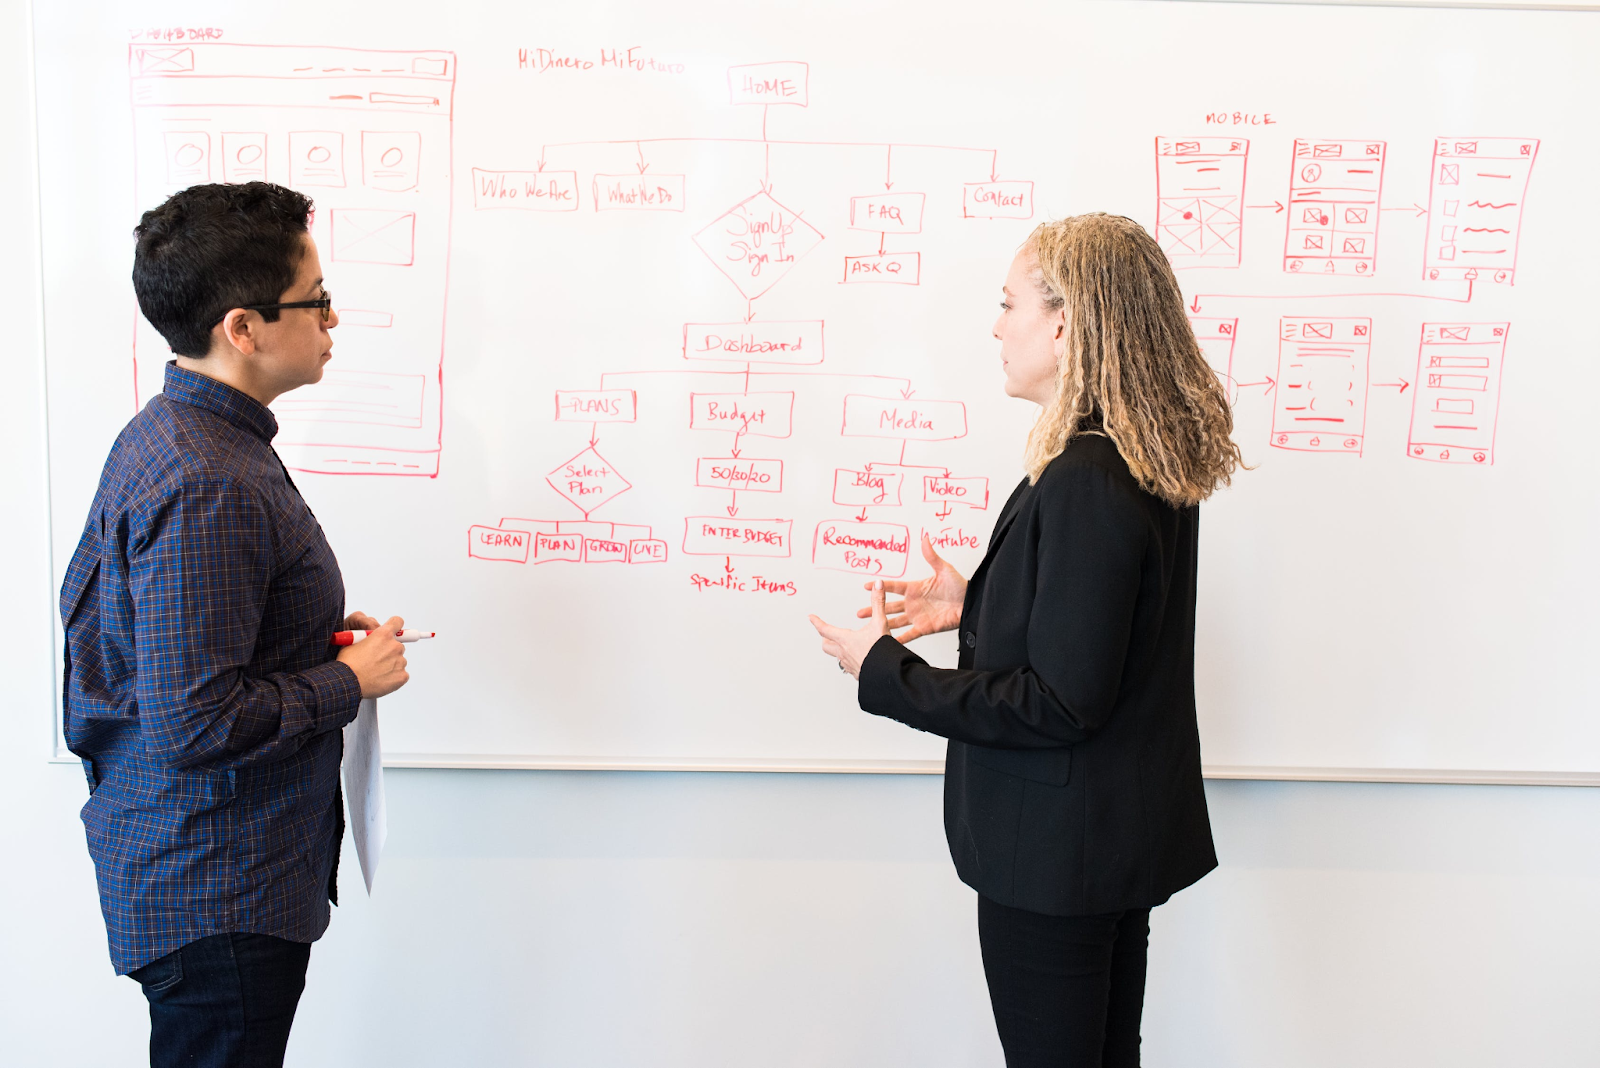 A man and woman in front of a whiteboard flowchart discussing UX design.